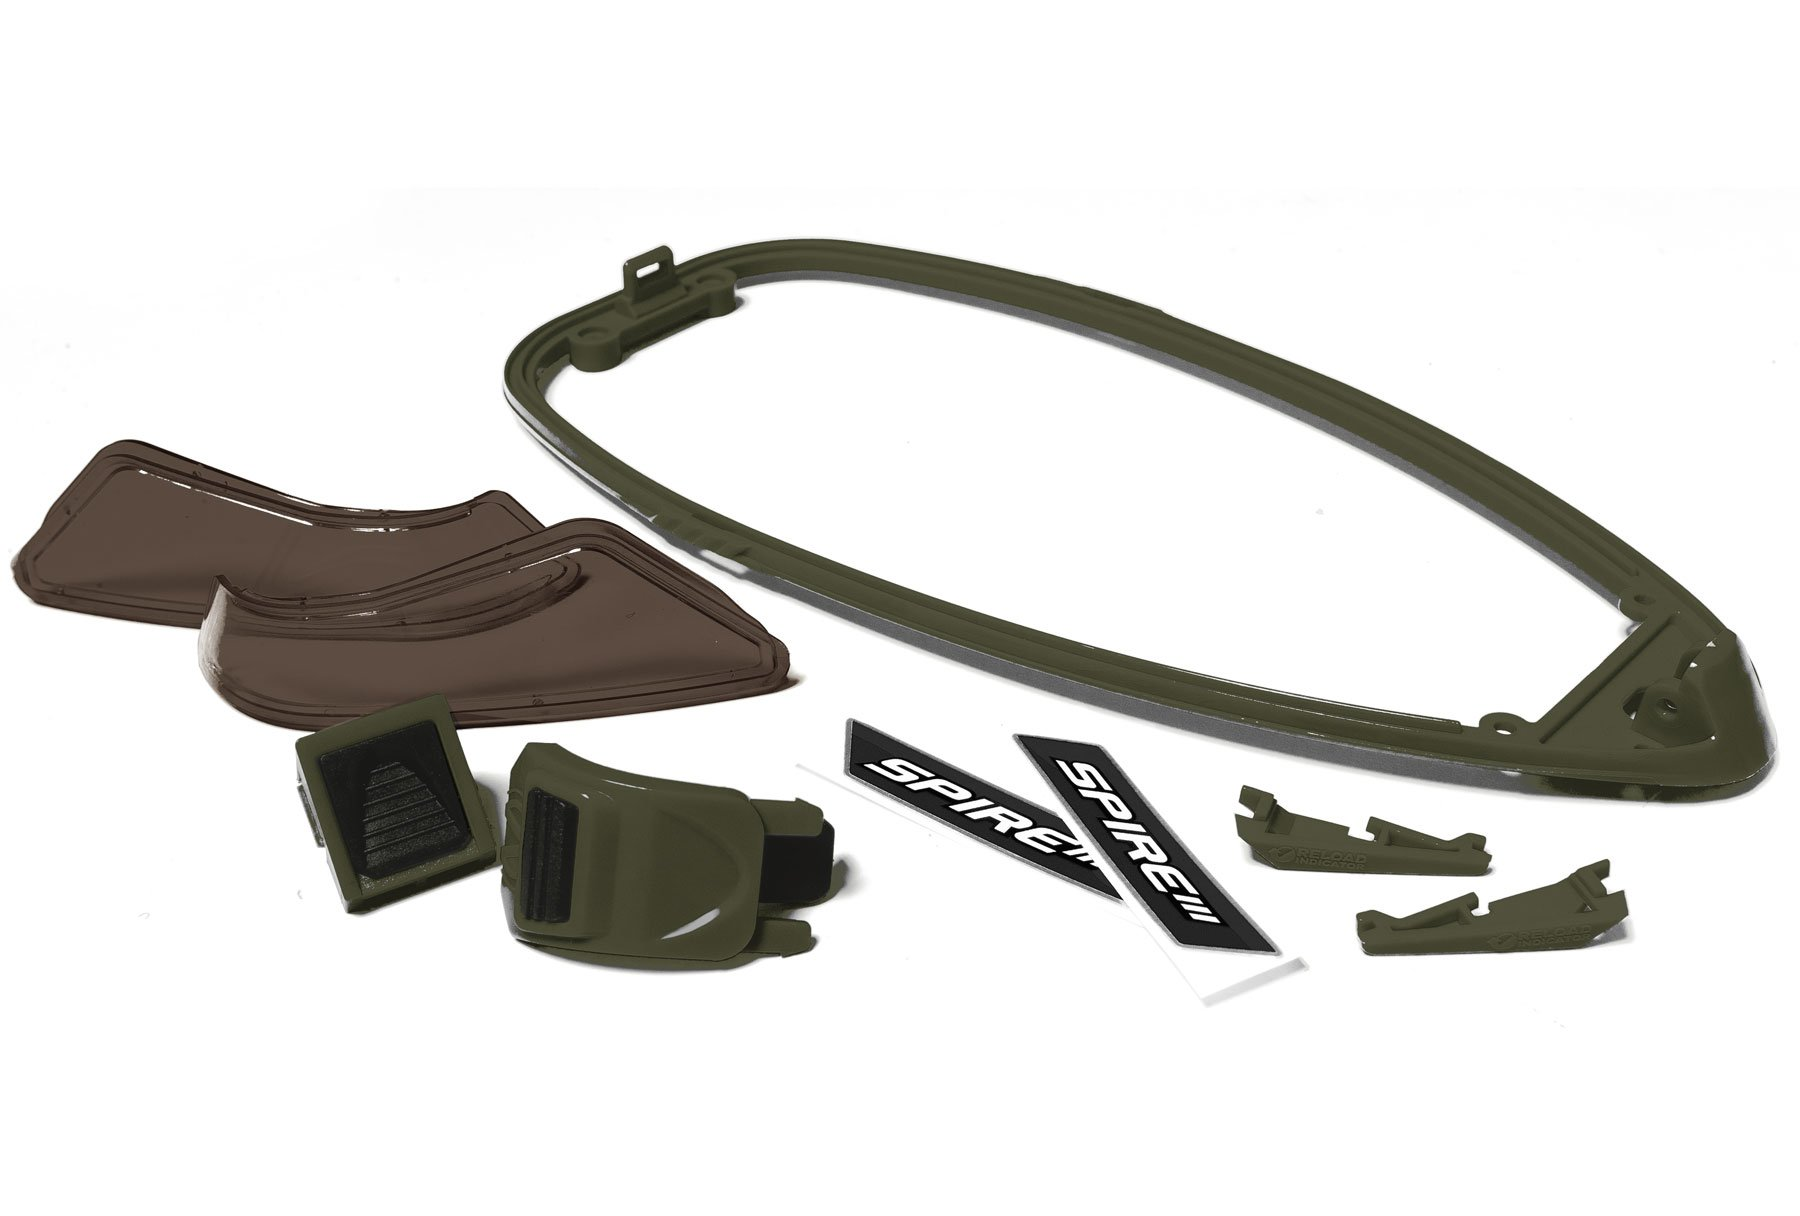 Virtue Paintball Virtue Spire III Color Kit, Olive (2229) by Virtue Paintball